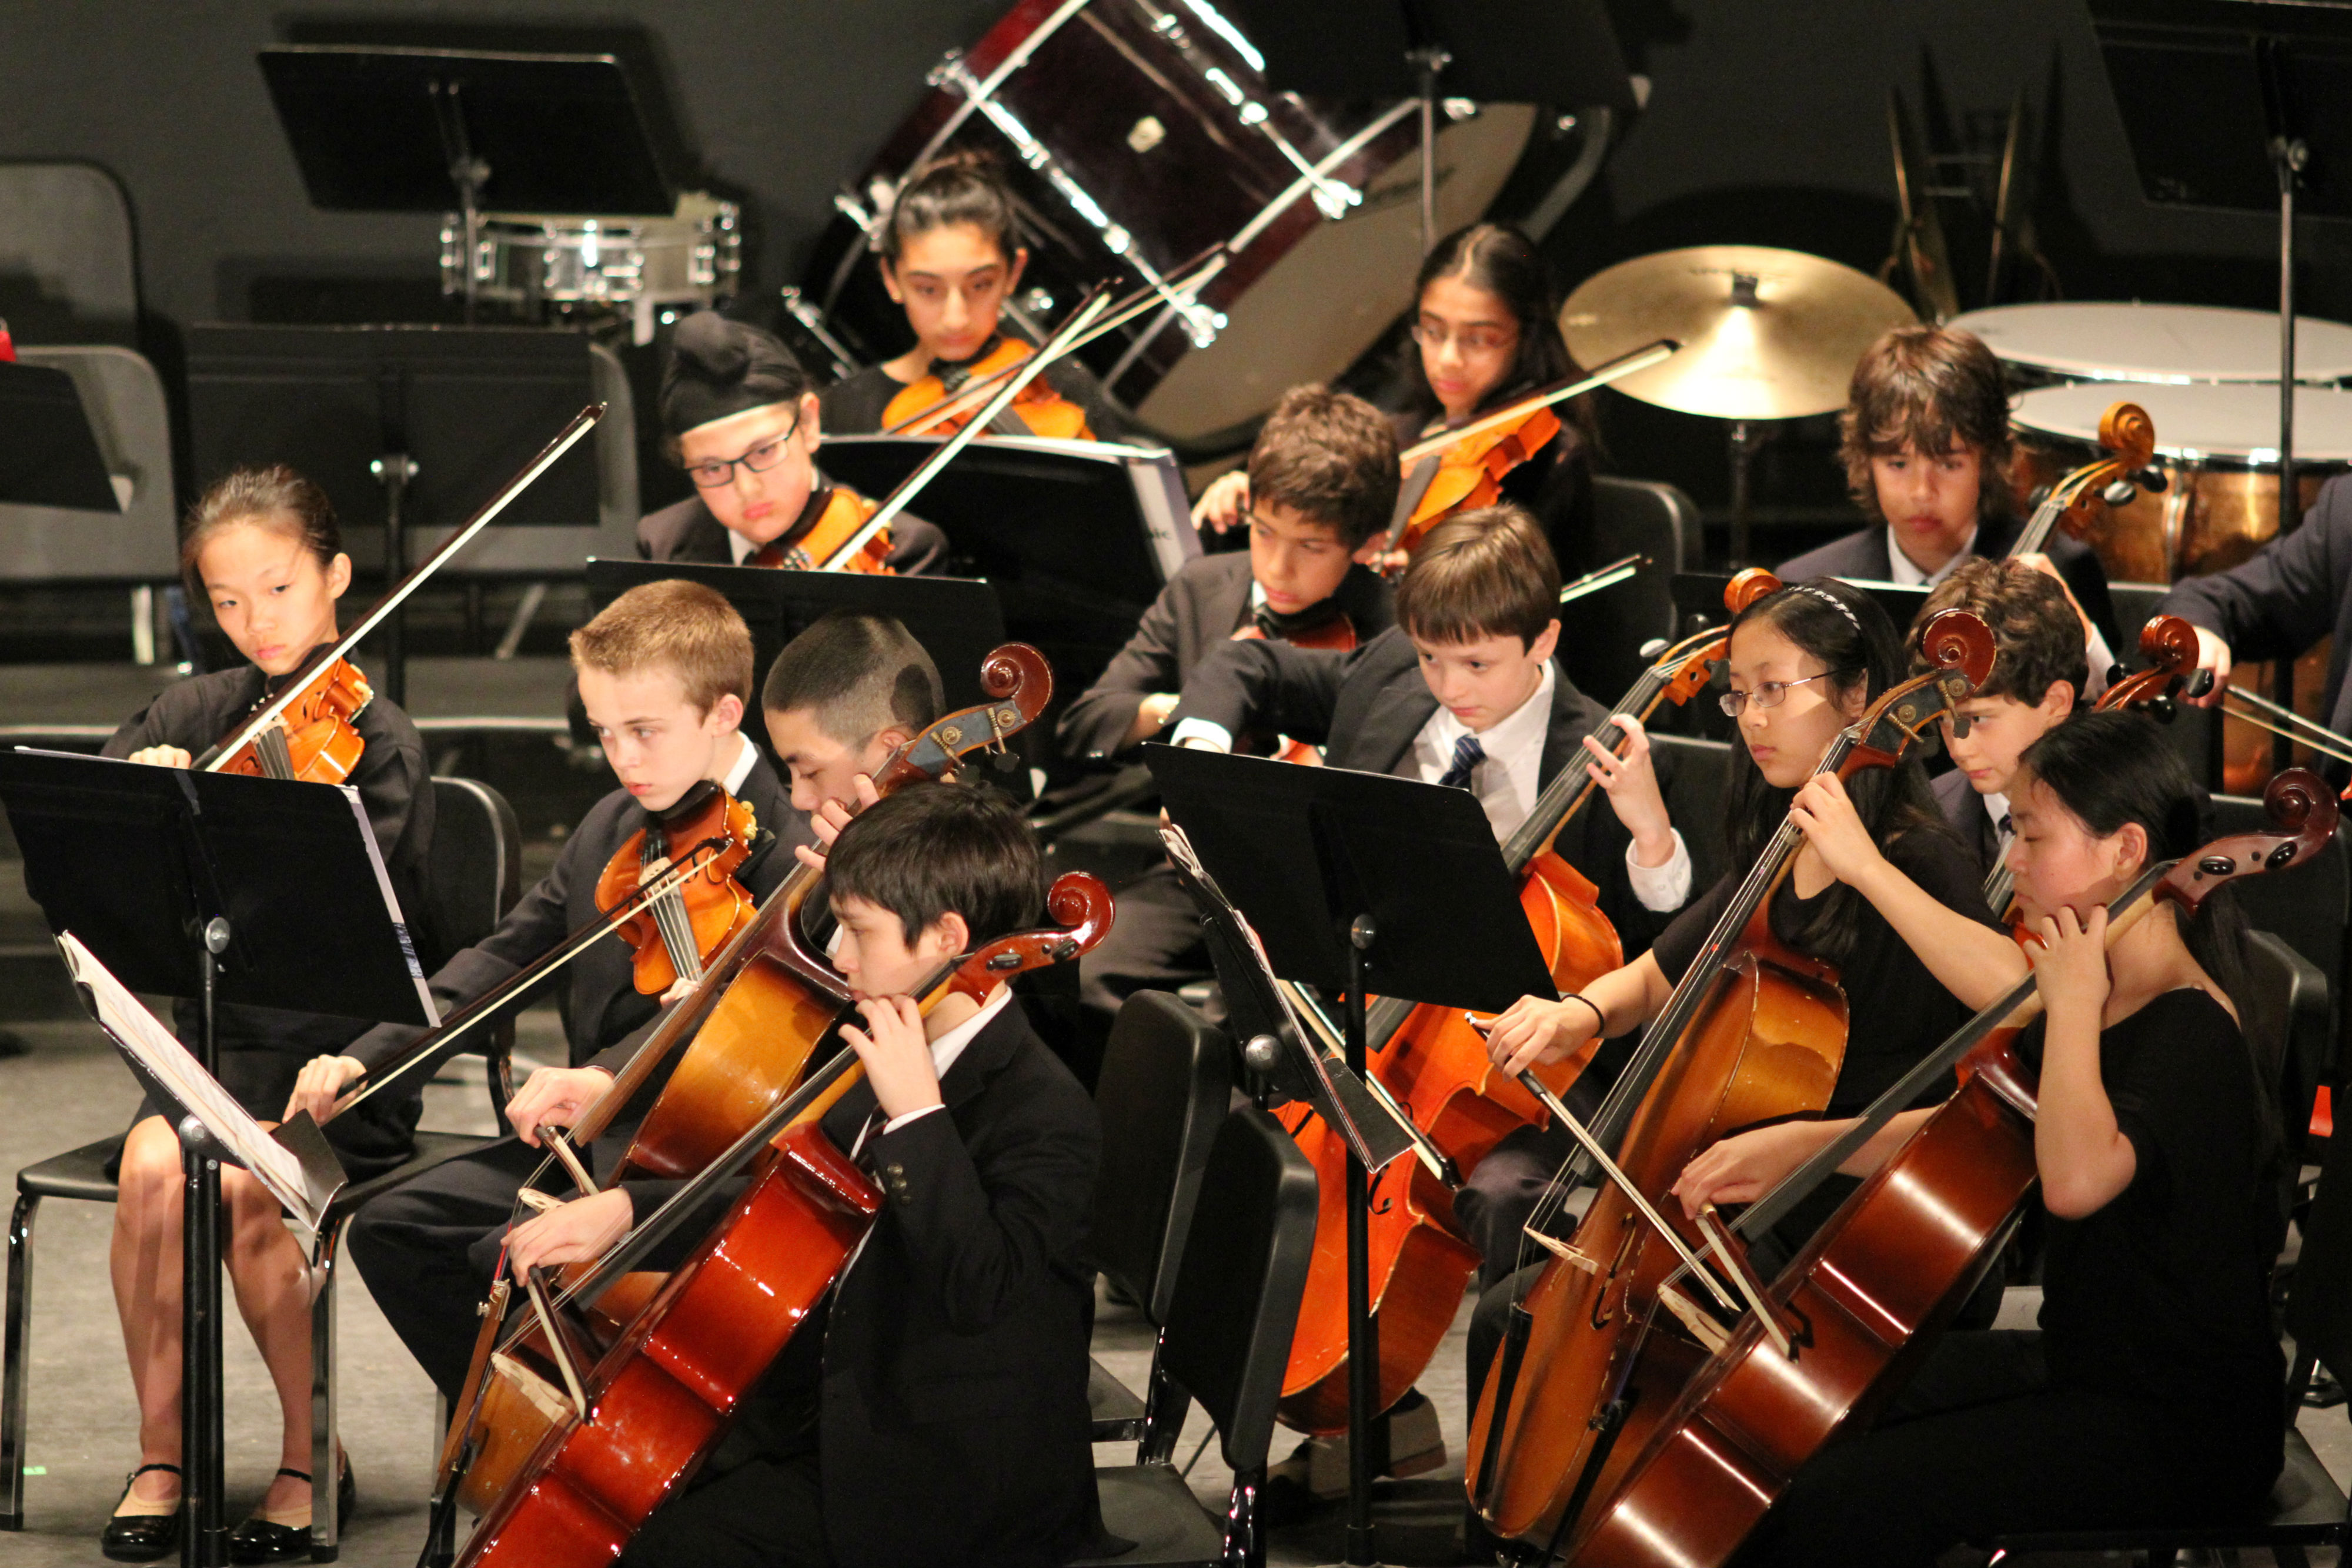 classical music concert essays · check out our top free essays on classical music concert report essay to help you write your own essay.